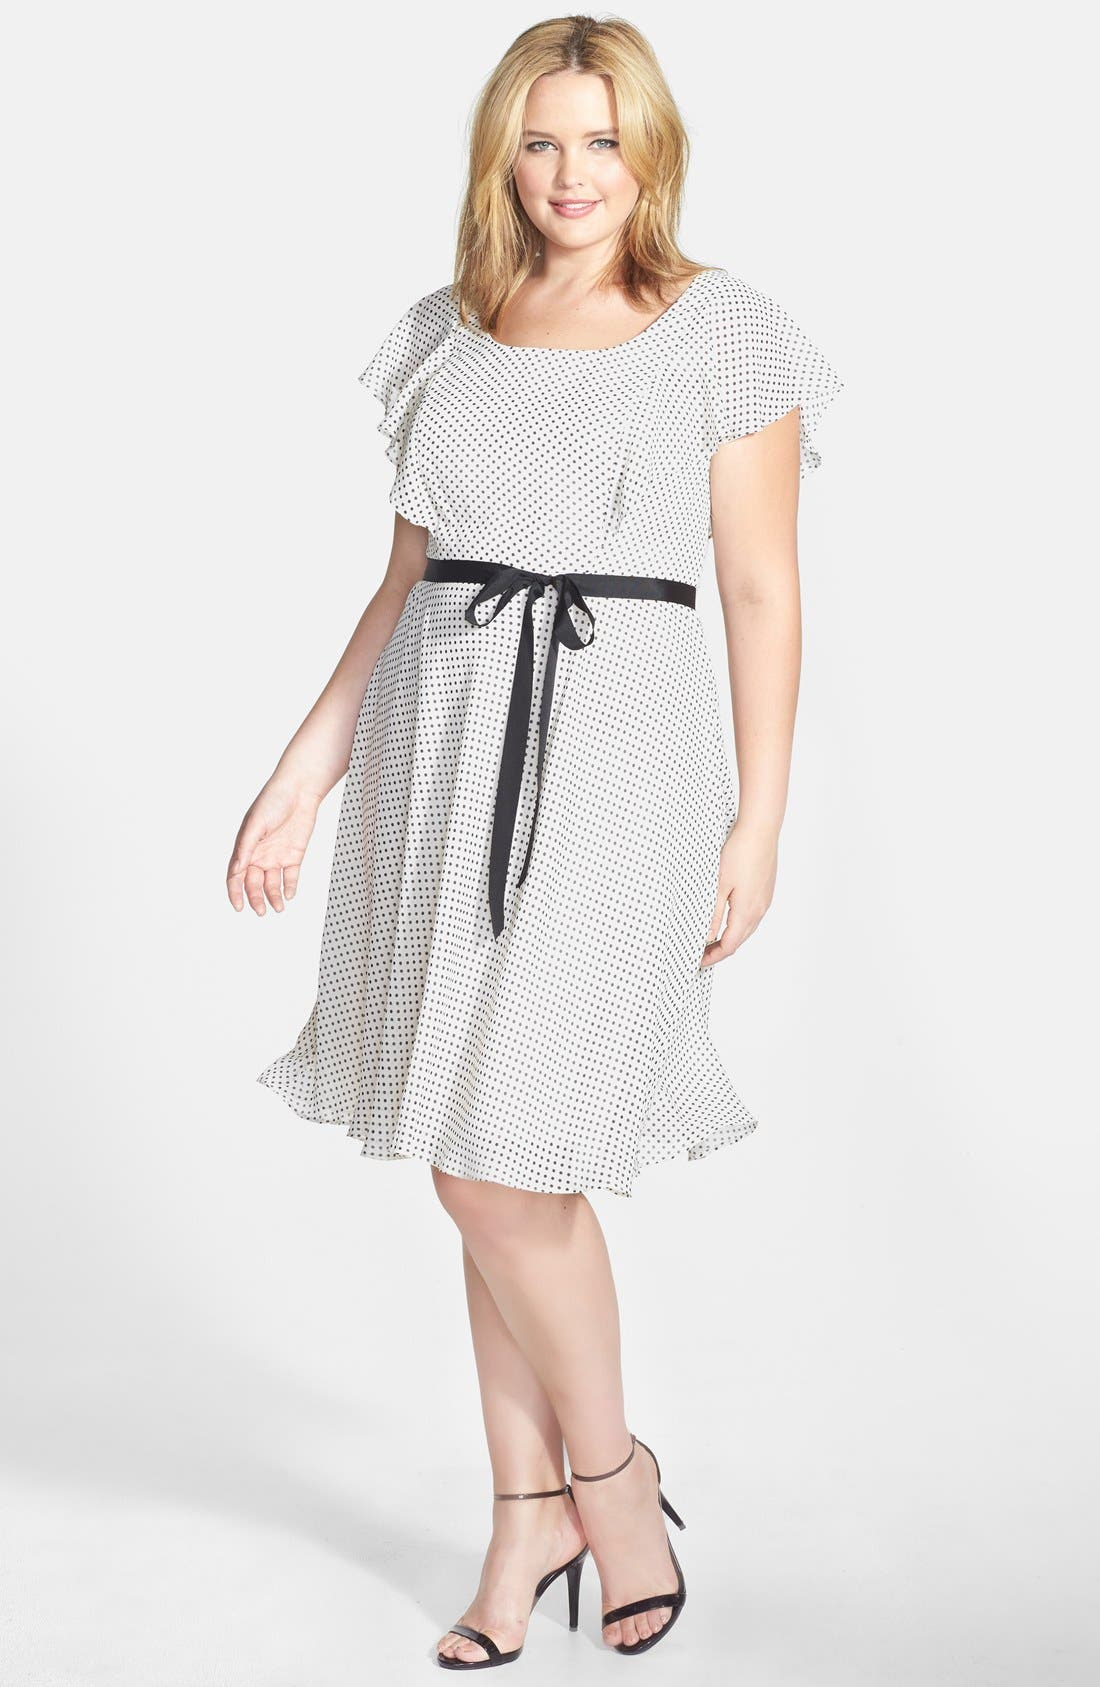 Alternate Image 1 Selected - Adrianna Papell Dot Print Ruffle A-Line Chiffon Dress (Plus Size)